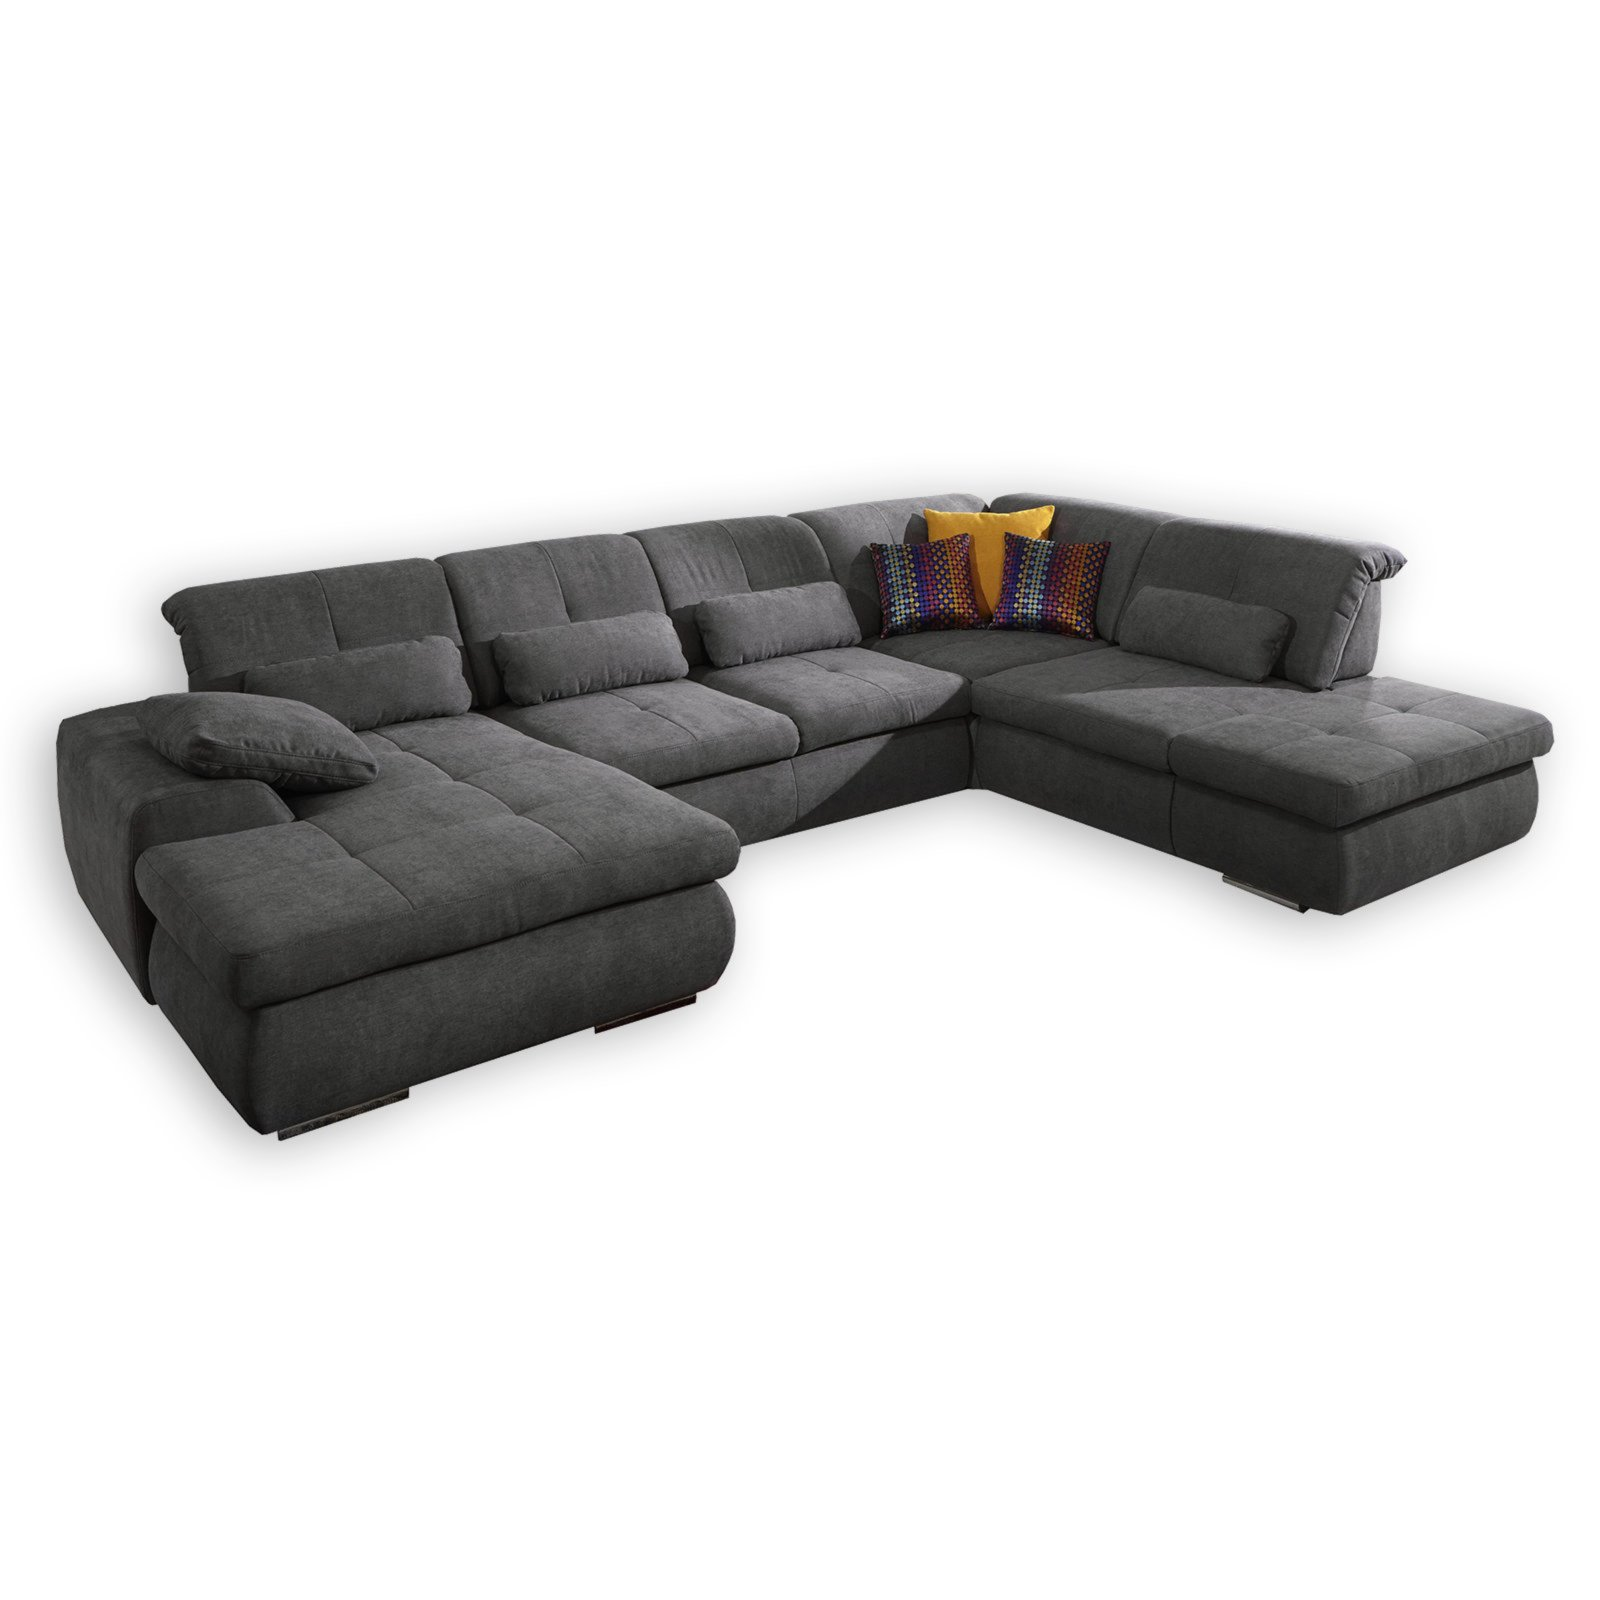 sofa mit boxen sofa mit boxen stilvolle sofa mit boxen bilder erindzain artanova s athena sofa. Black Bedroom Furniture Sets. Home Design Ideas